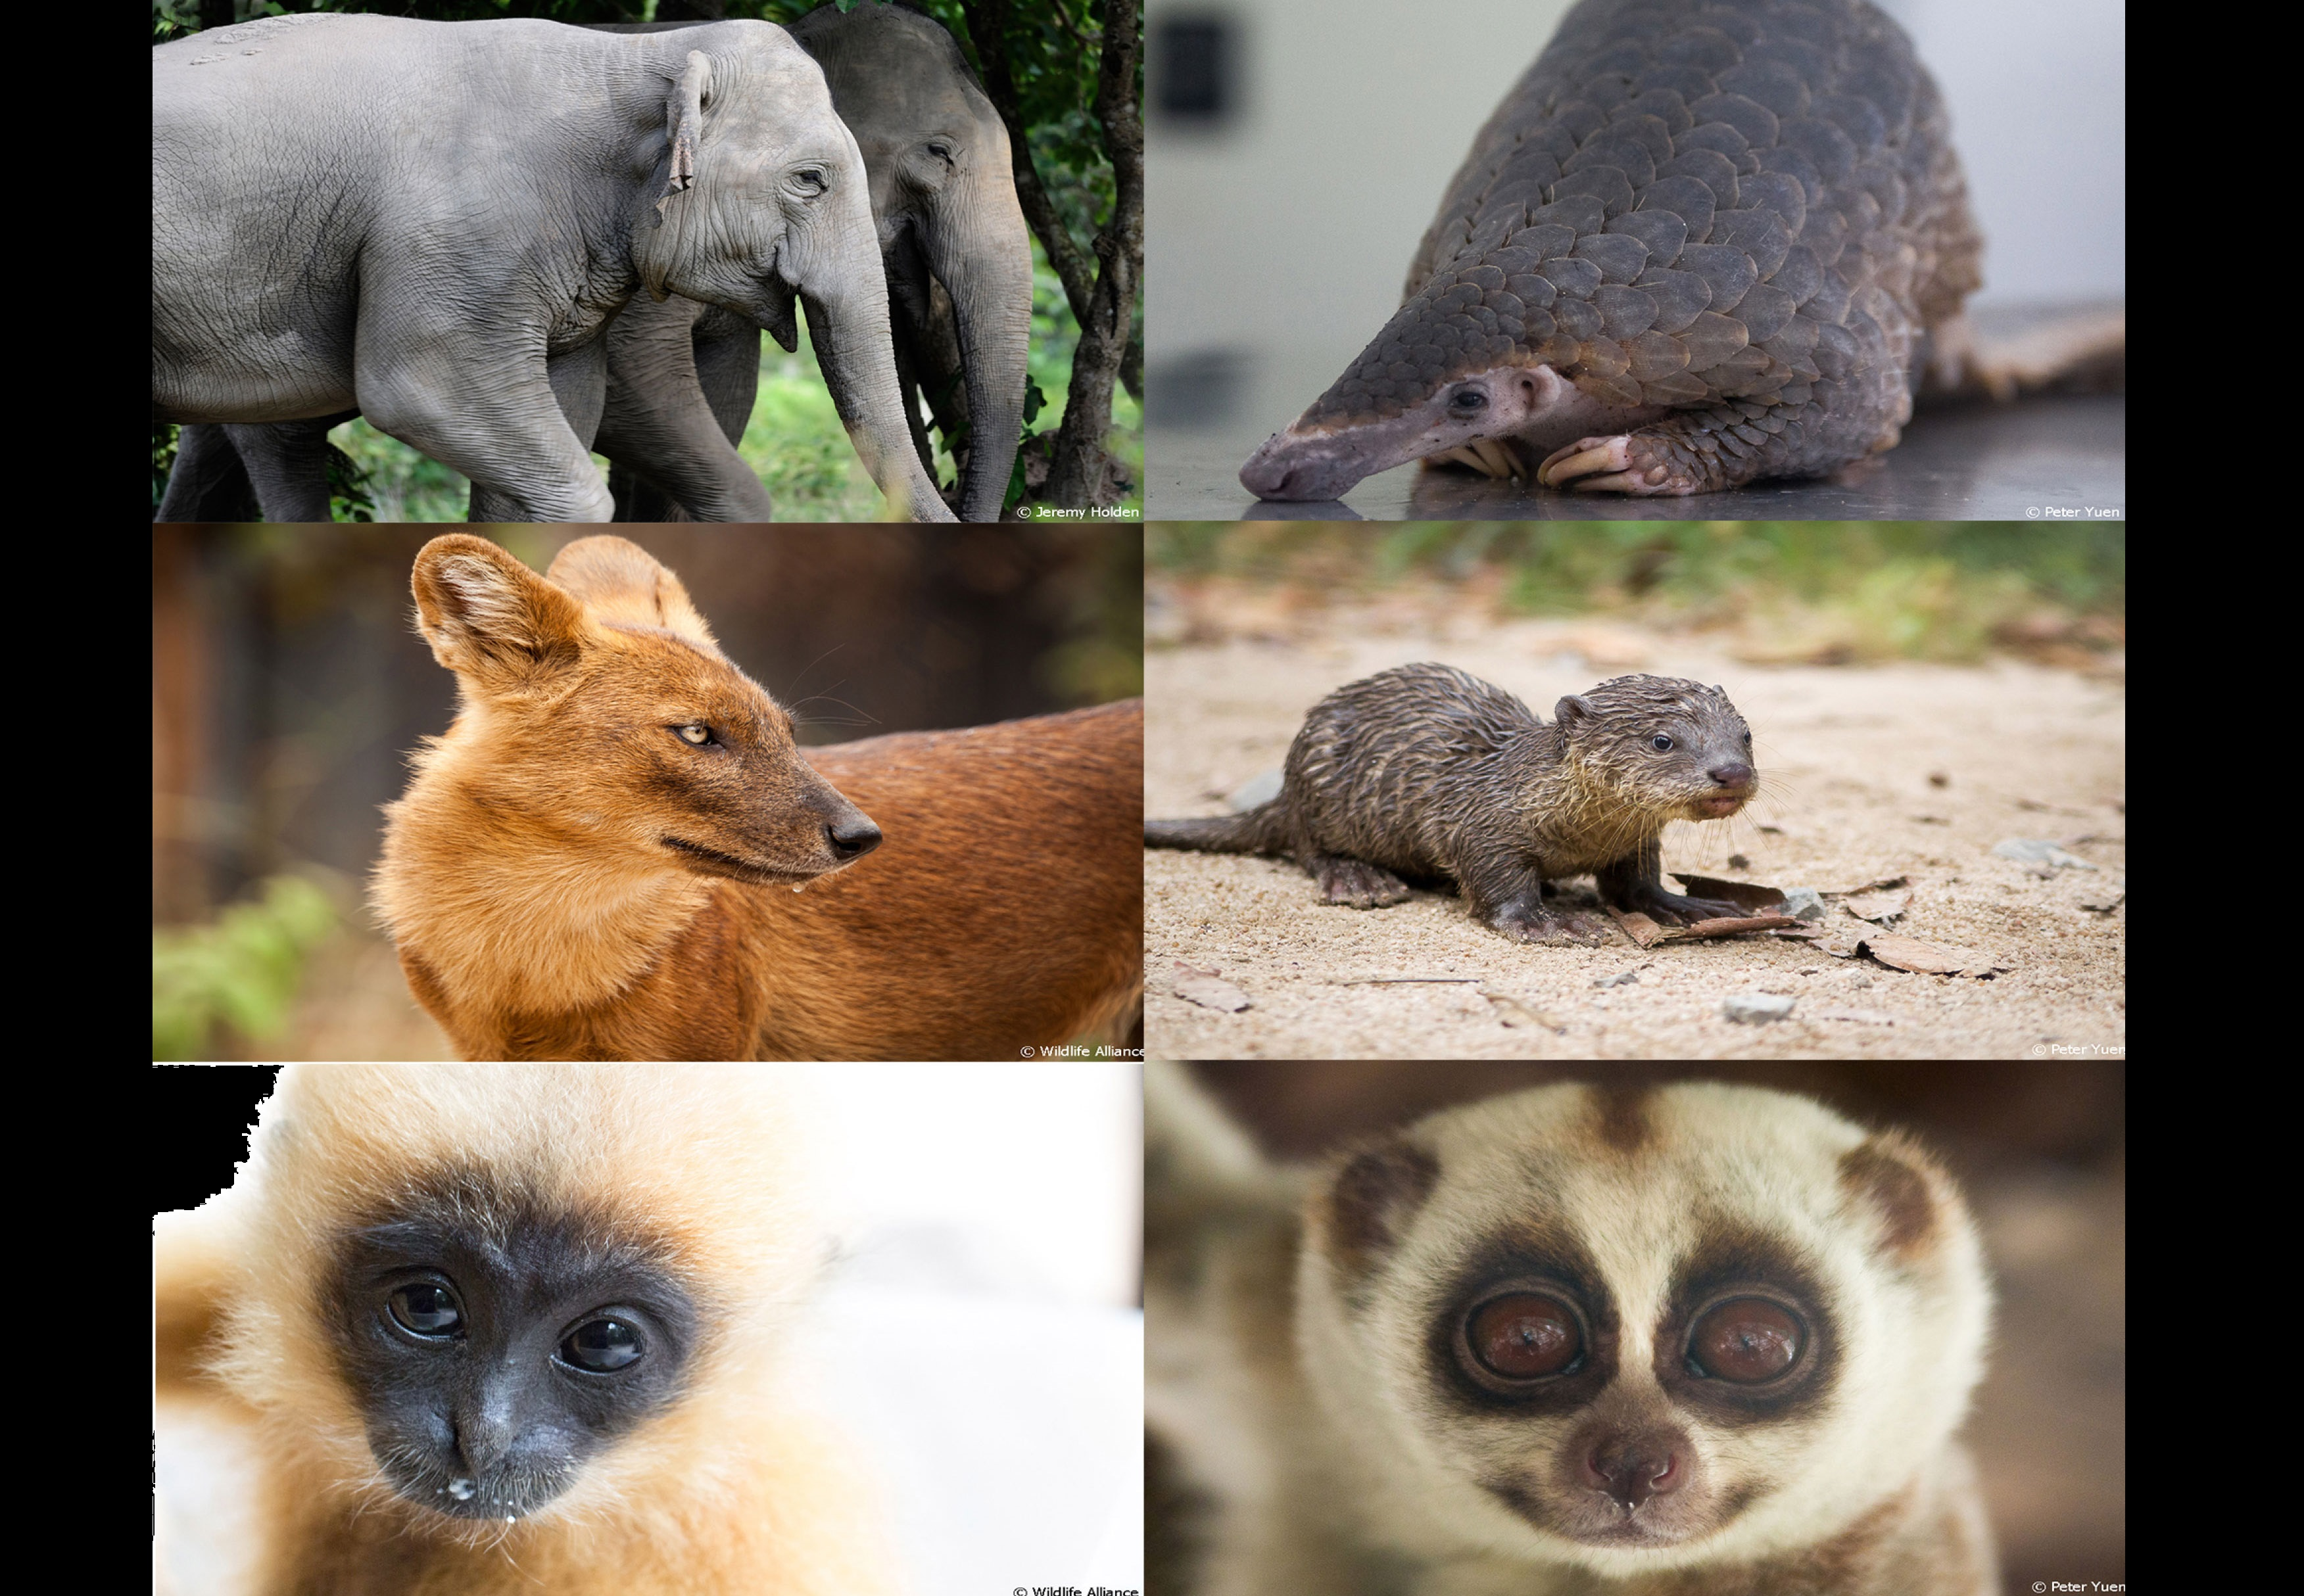 6 animals that need our protection. (Photo courtesy of Peter Yuan, Wildlife Alliance)